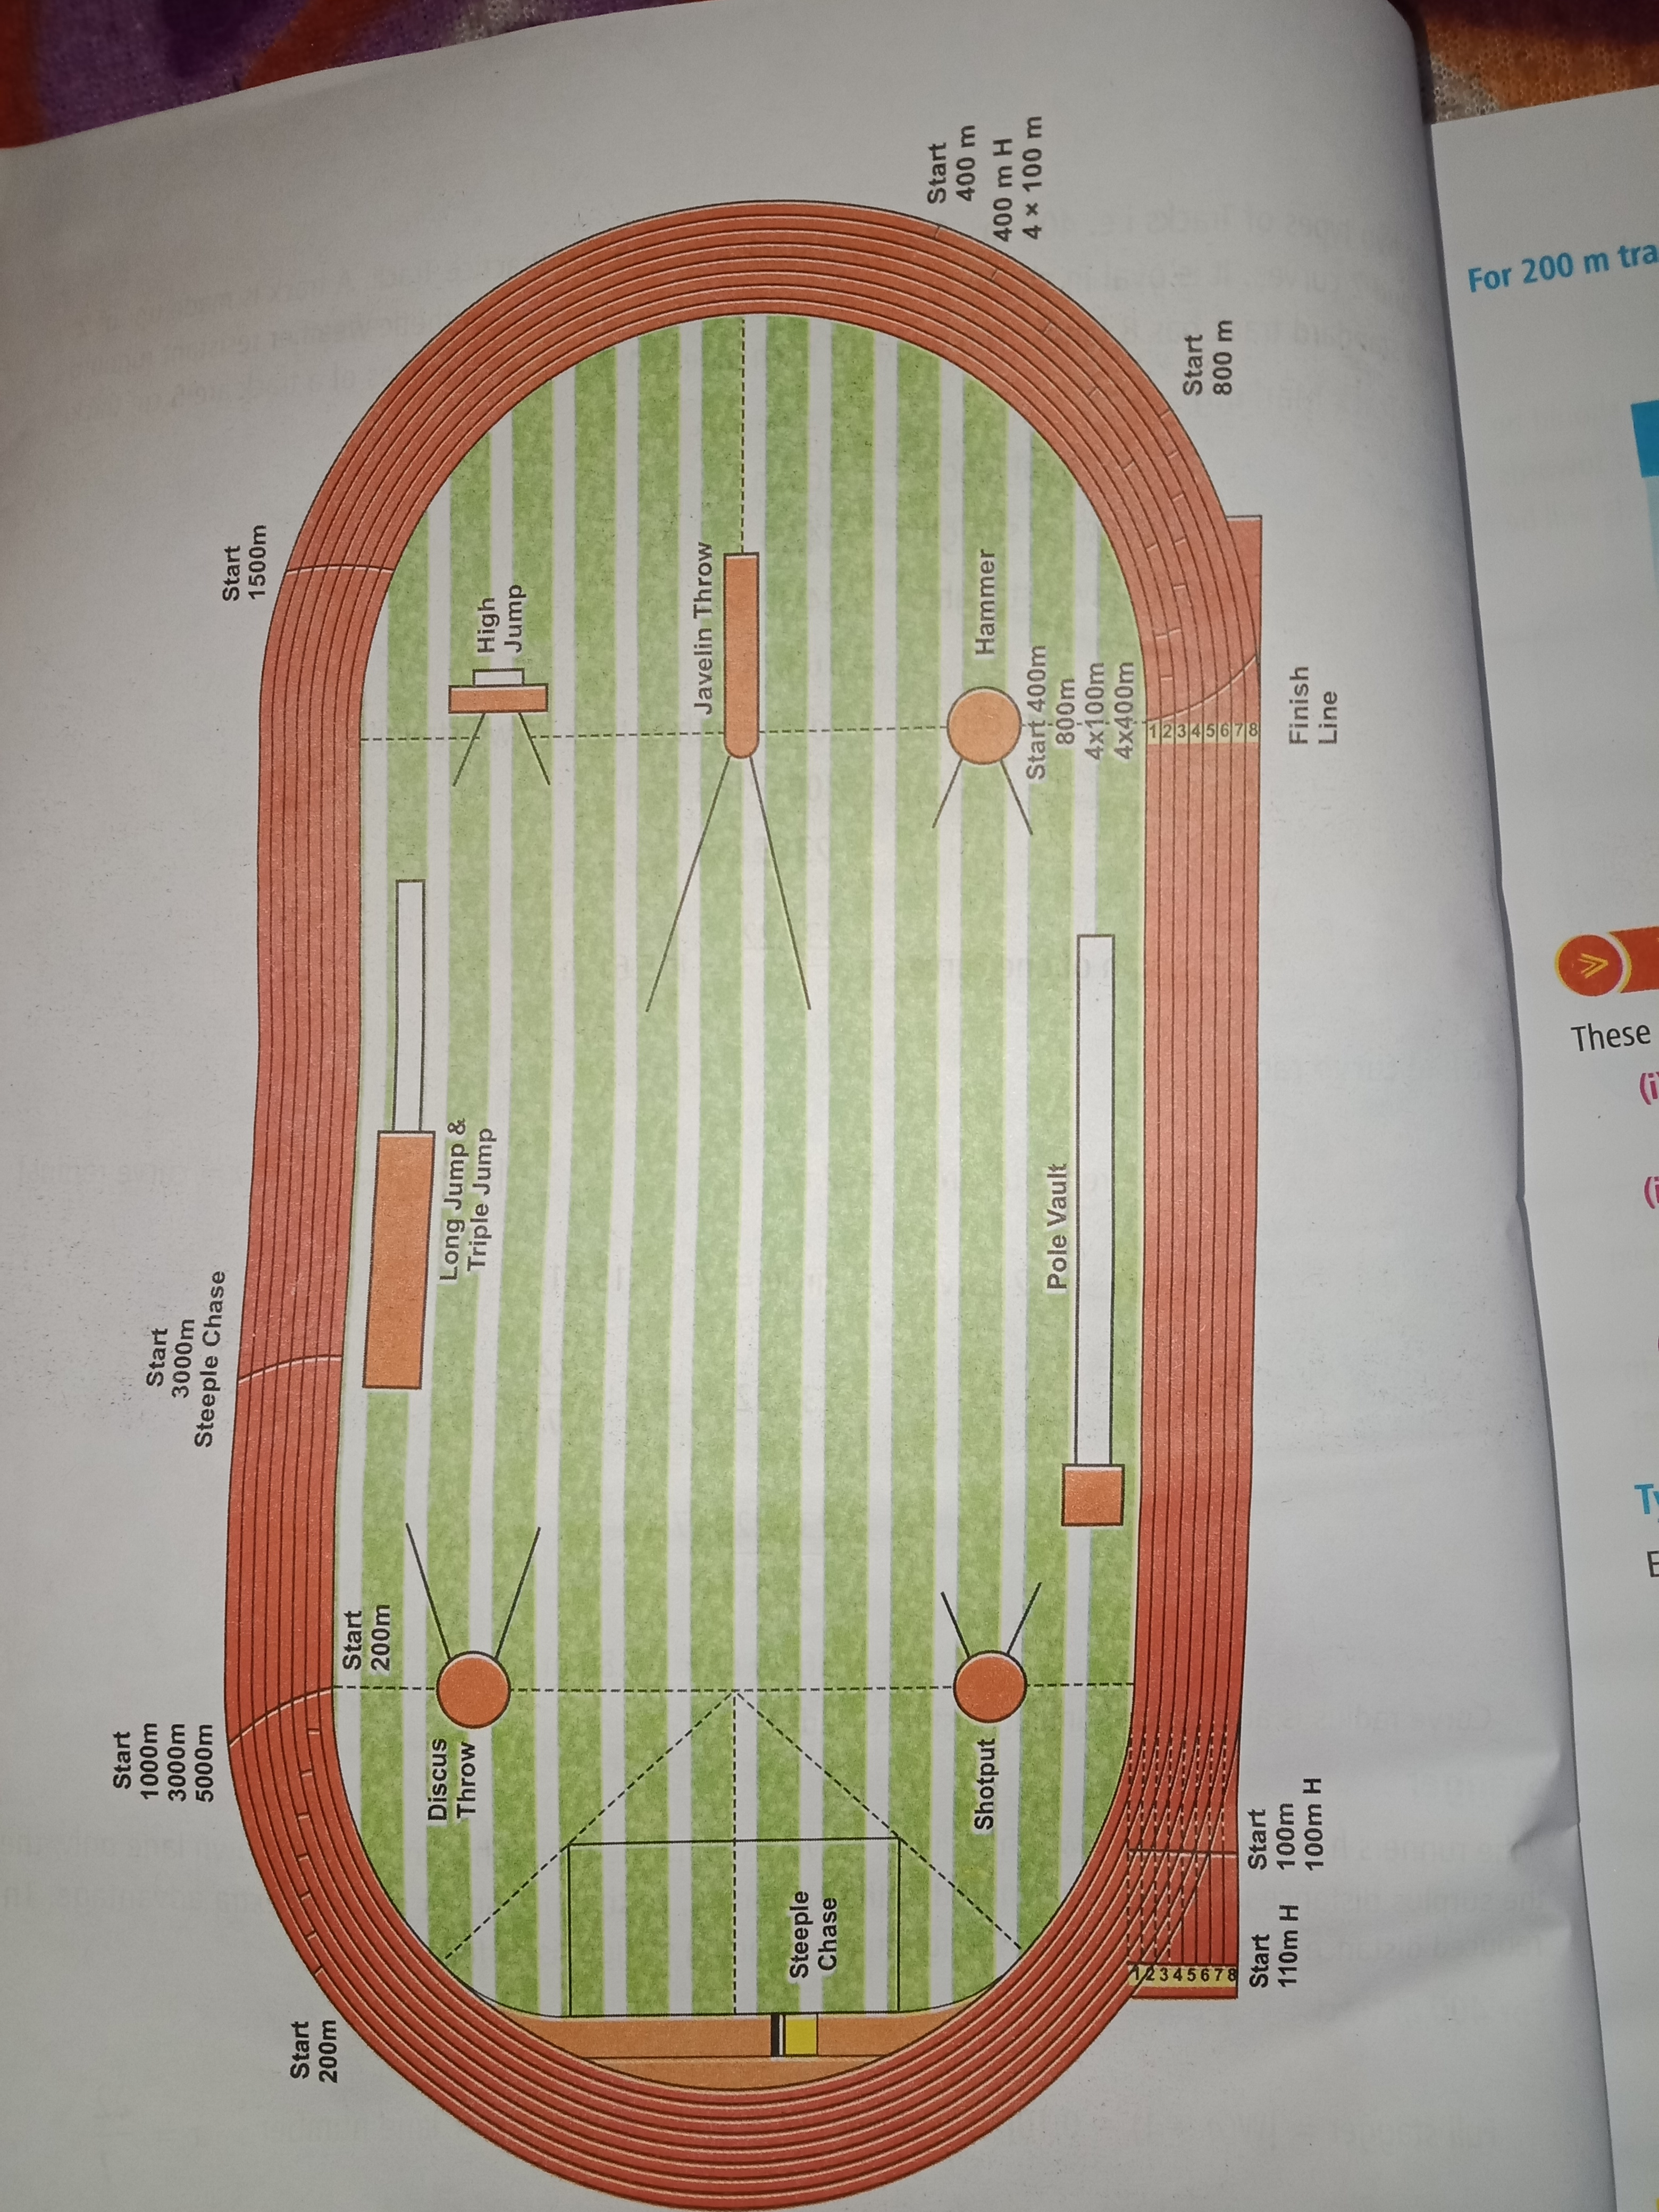 label diagram of 400m track and field with computation. Black Bedroom Furniture Sets. Home Design Ideas